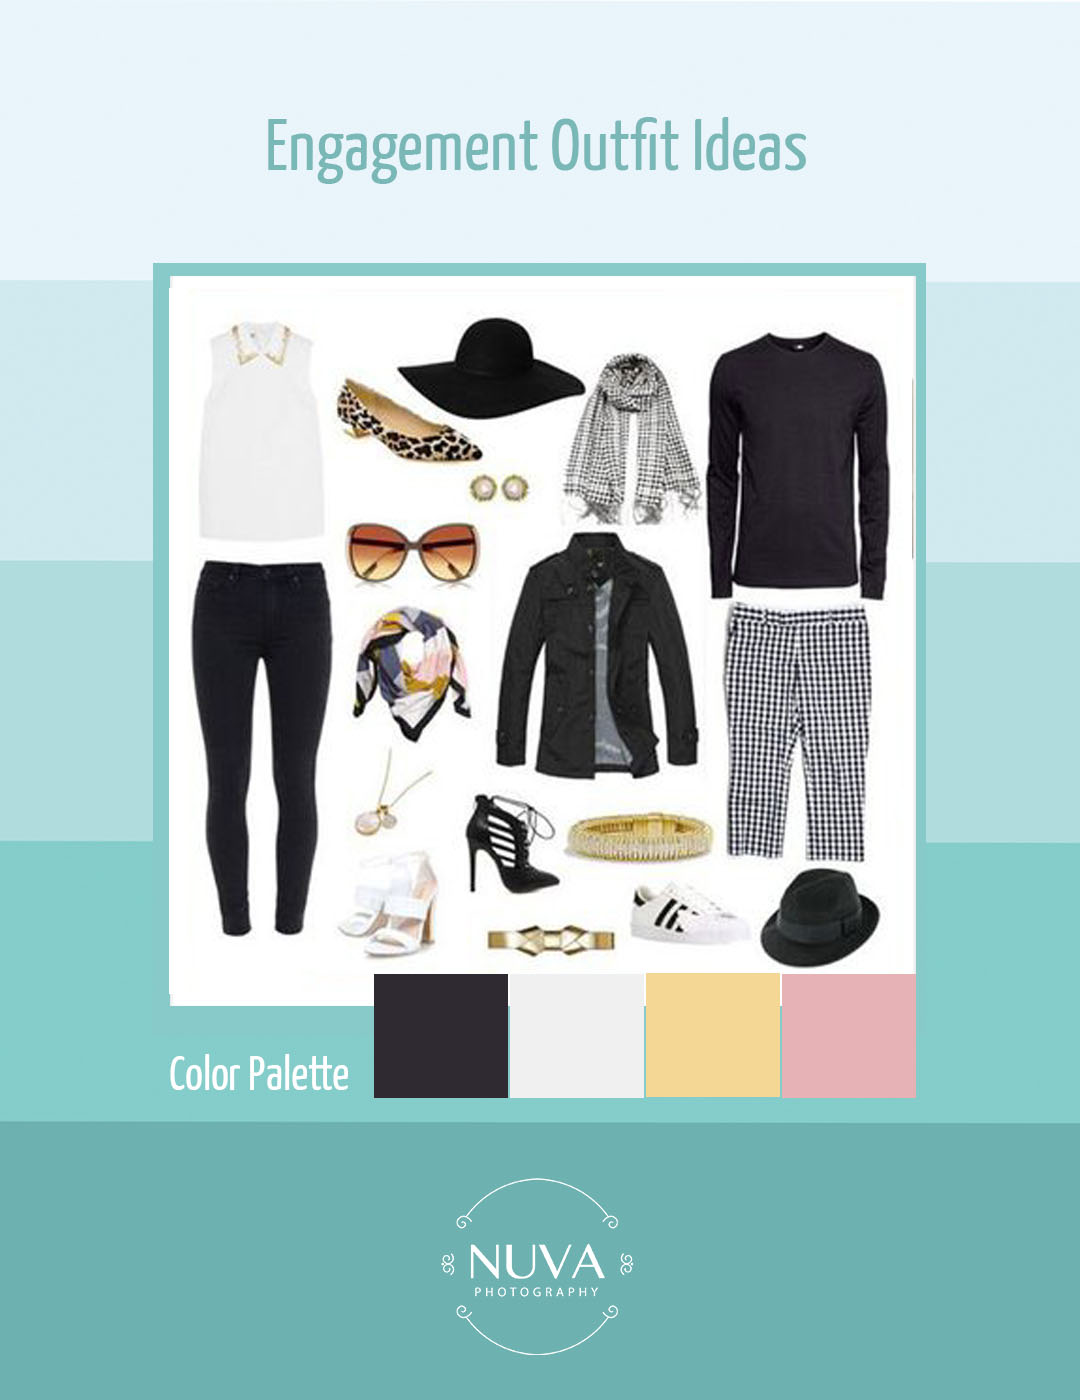 Engagement Outfit Ideas by Nuva Photography - Nuva Photography